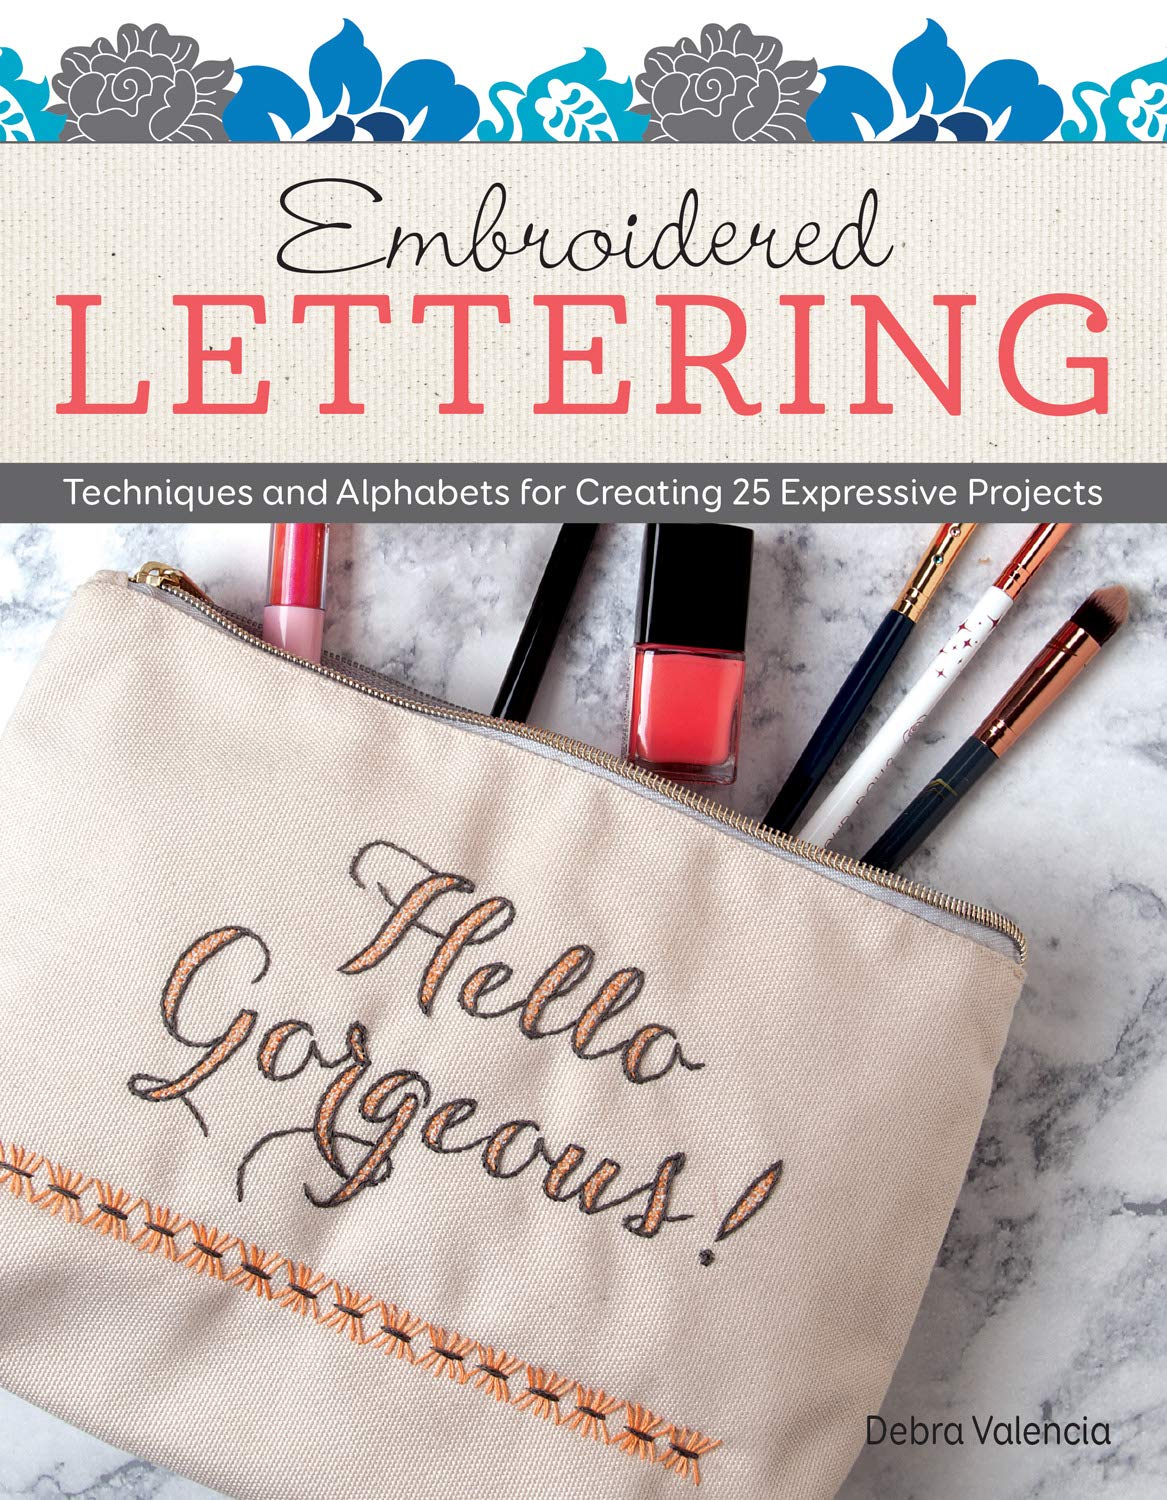 Embroidery Sampler Patterns Free Free Embroidery Sampler Patterns Free Embroidery Patterns